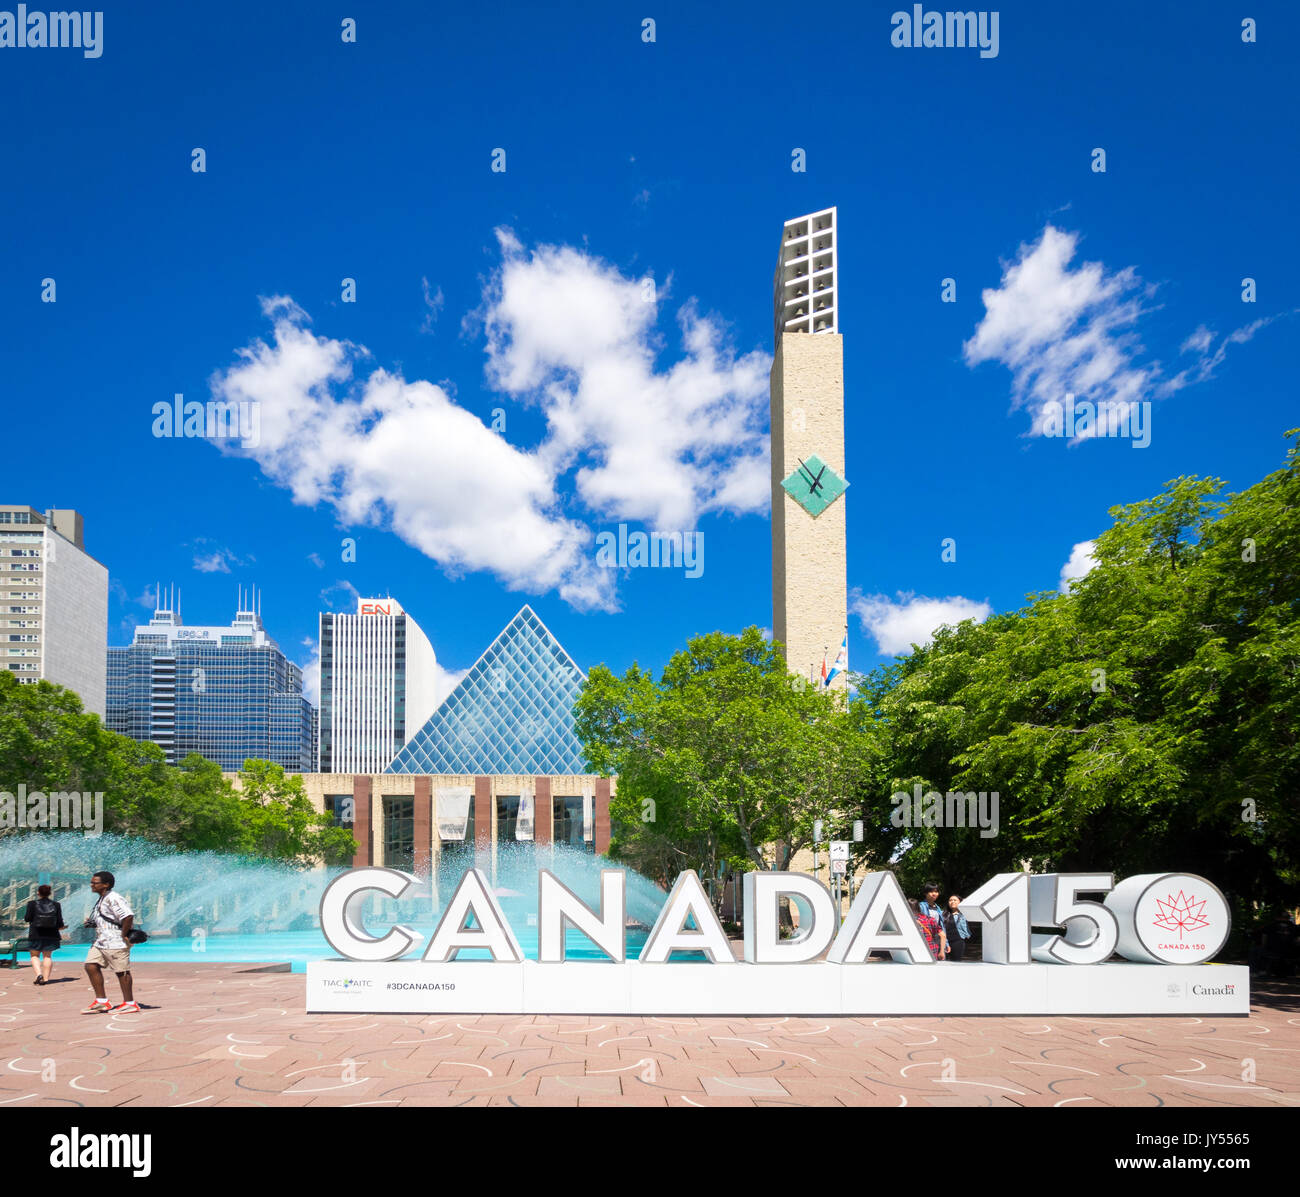 The official 3D Canada 150 sign at Sir Winston Churchill Square in Edmonton, Alberta, Canada. The sign celebrates Canada's 150th anniversary - Stock Image